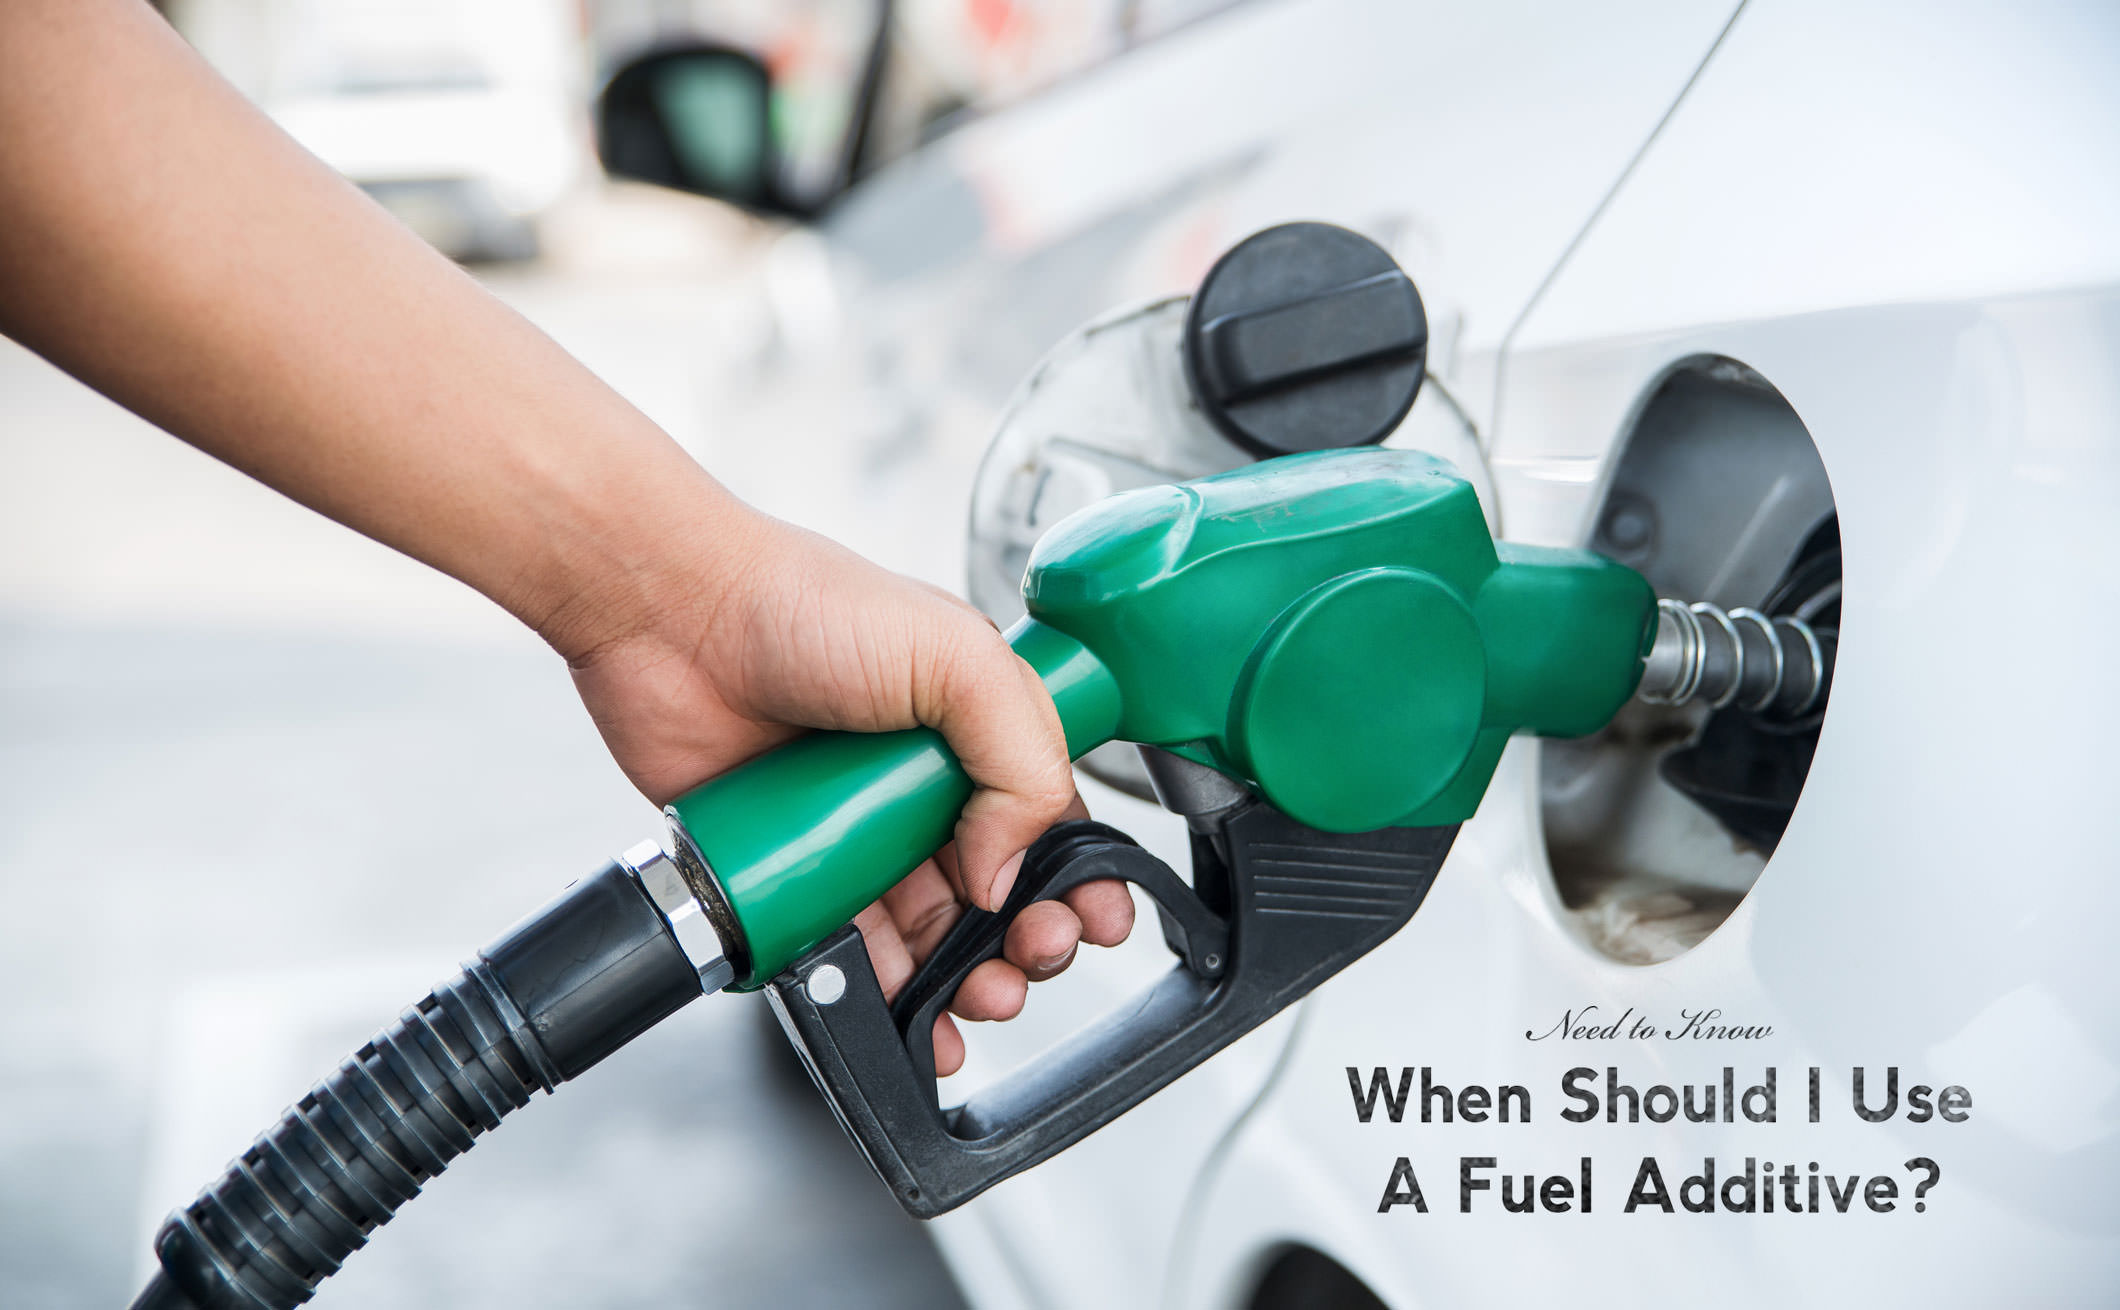 When Should I Use A Fuel Additive?